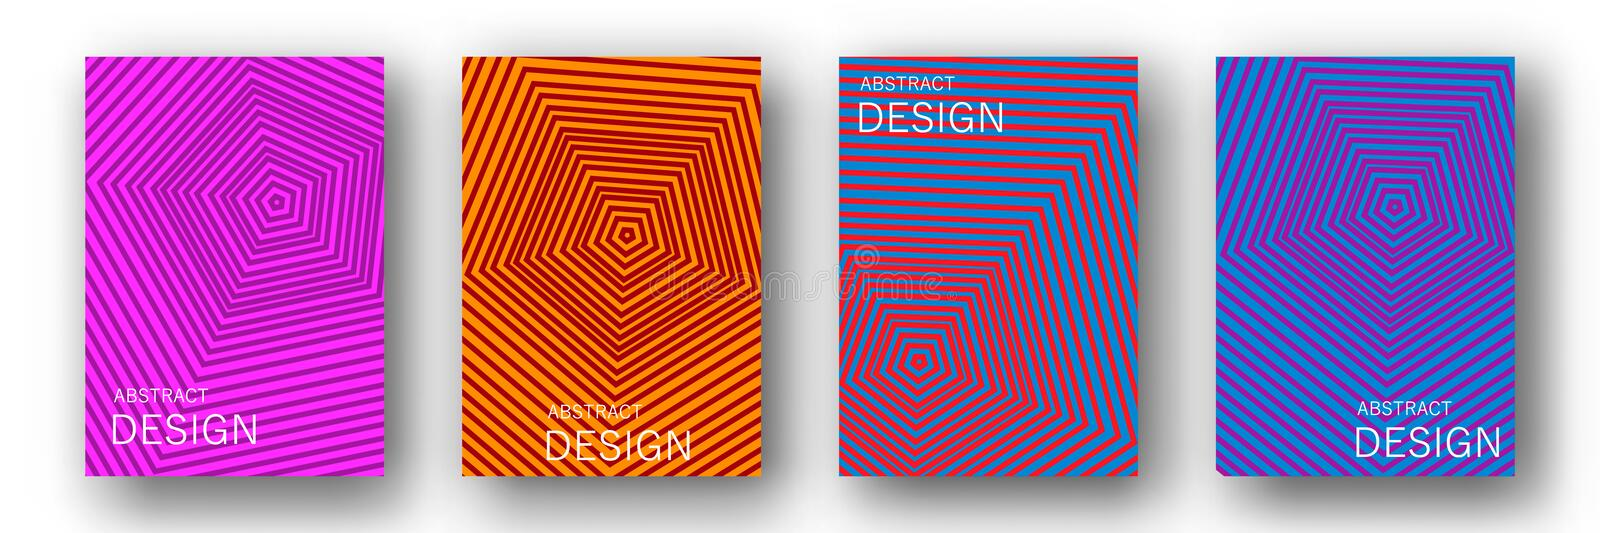 Minimal annual report design vector collection. Halftone lines texture cover page layout templates set. Report covers graphic design, business brochure pages royalty free illustration